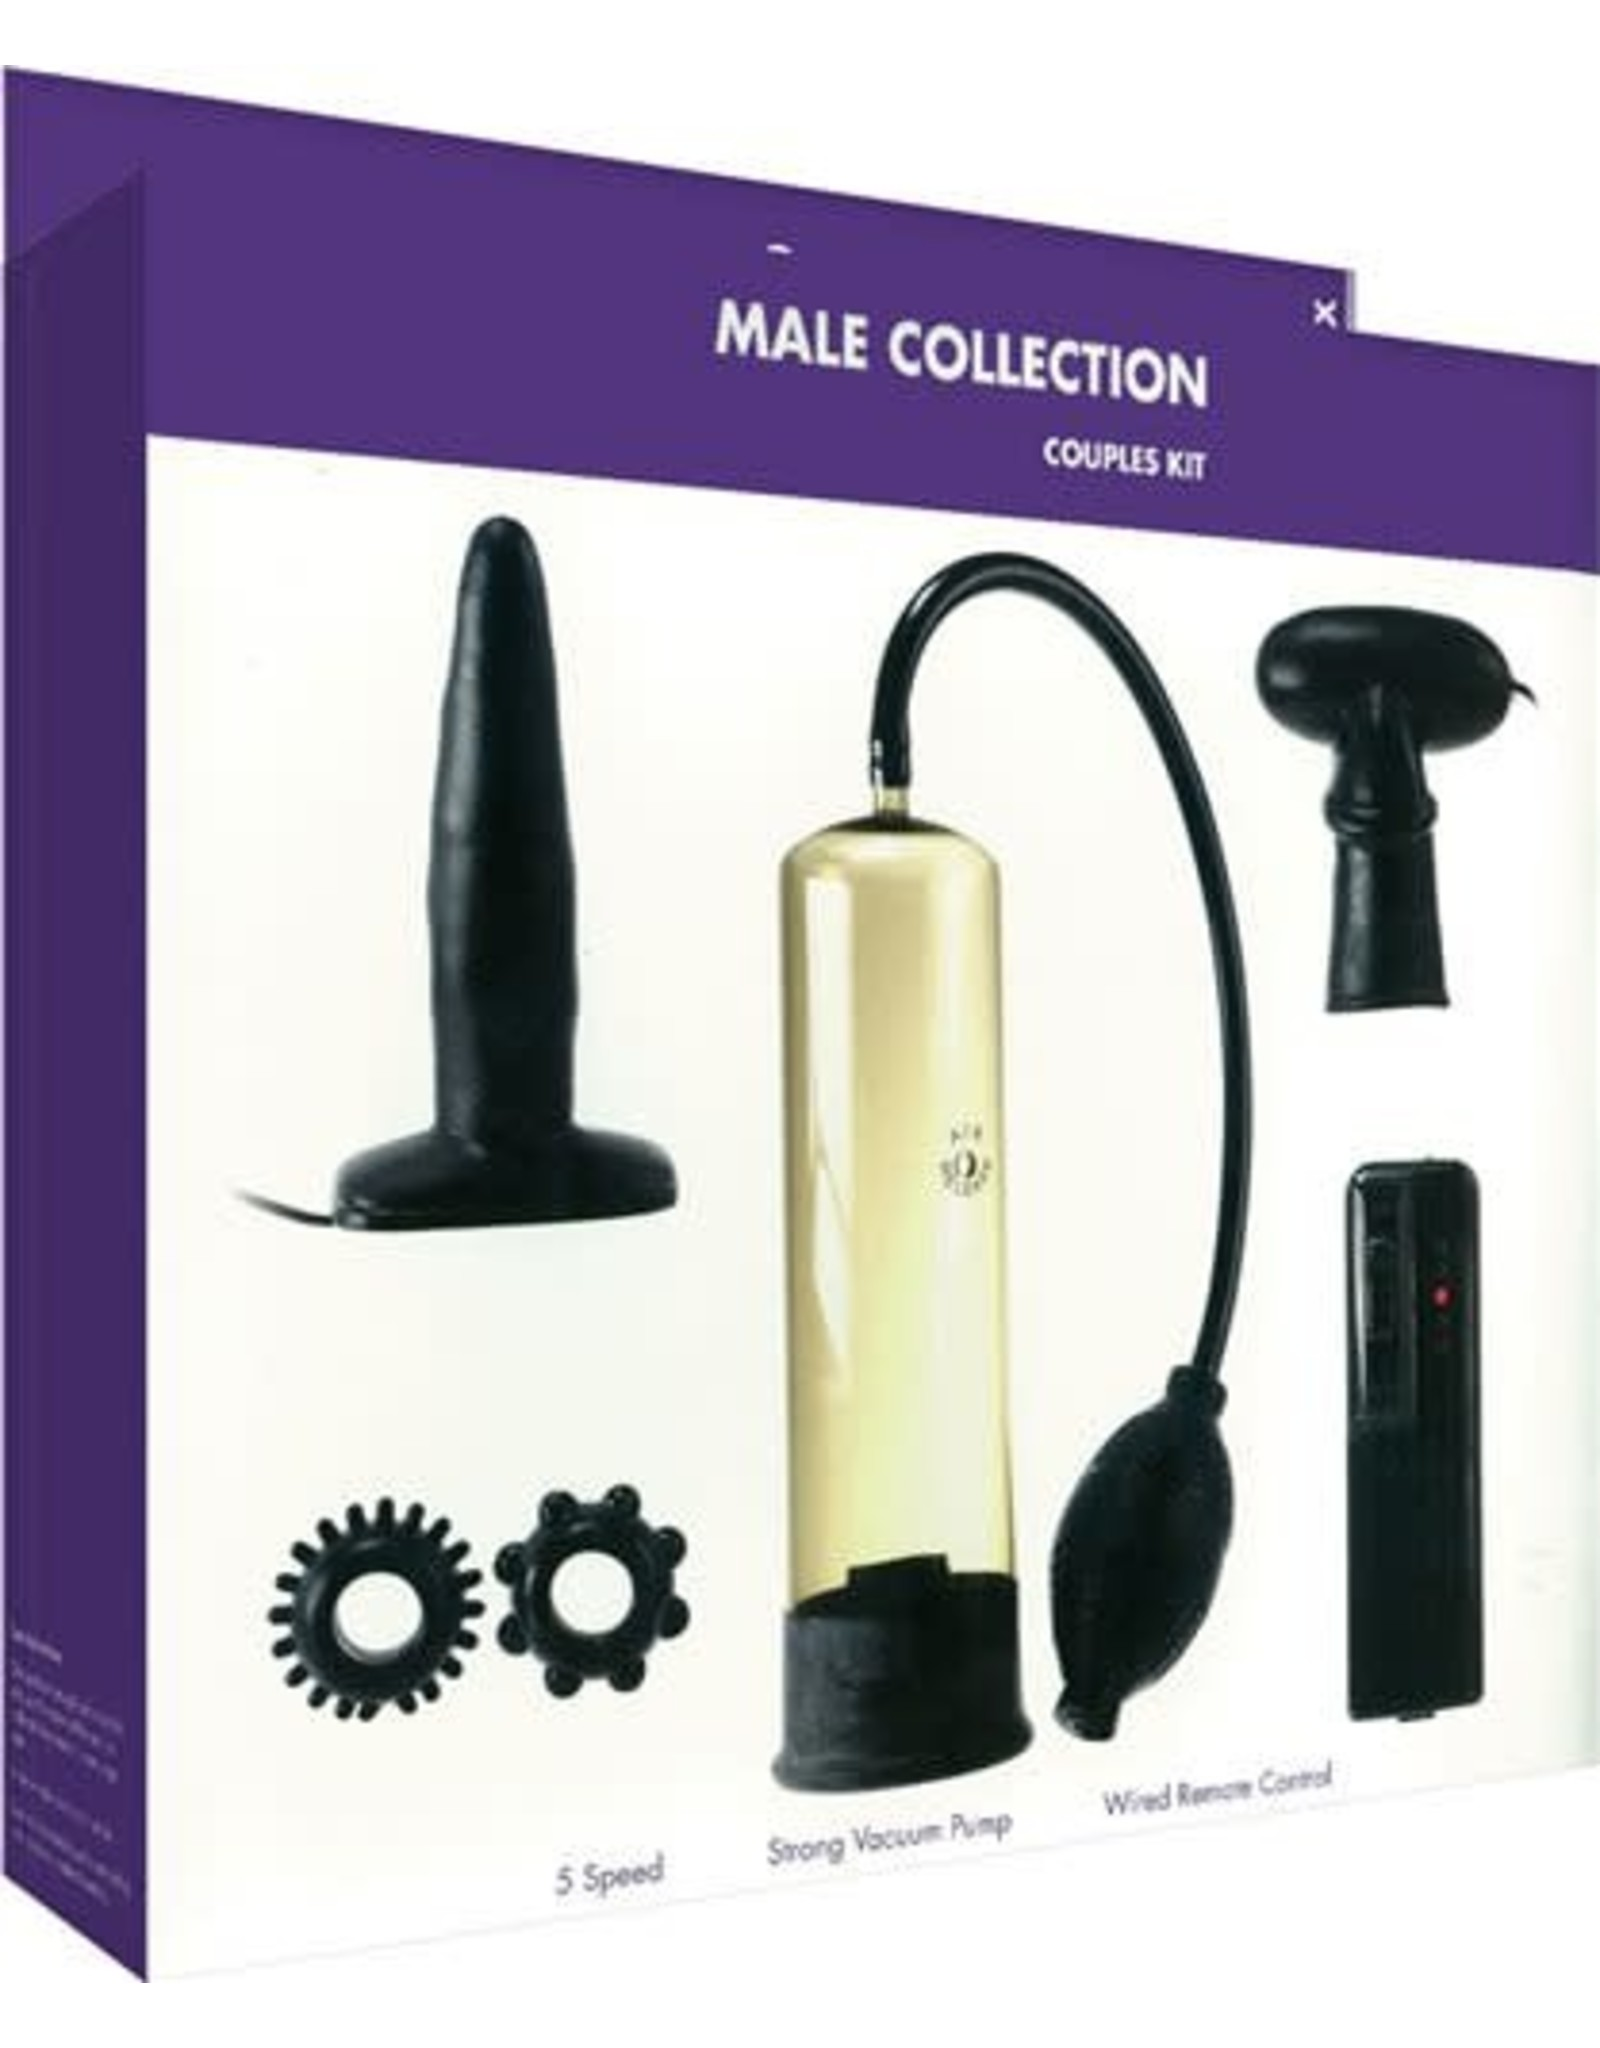 KINX - MALE COLLECTION COUPLES KIT - BLACK